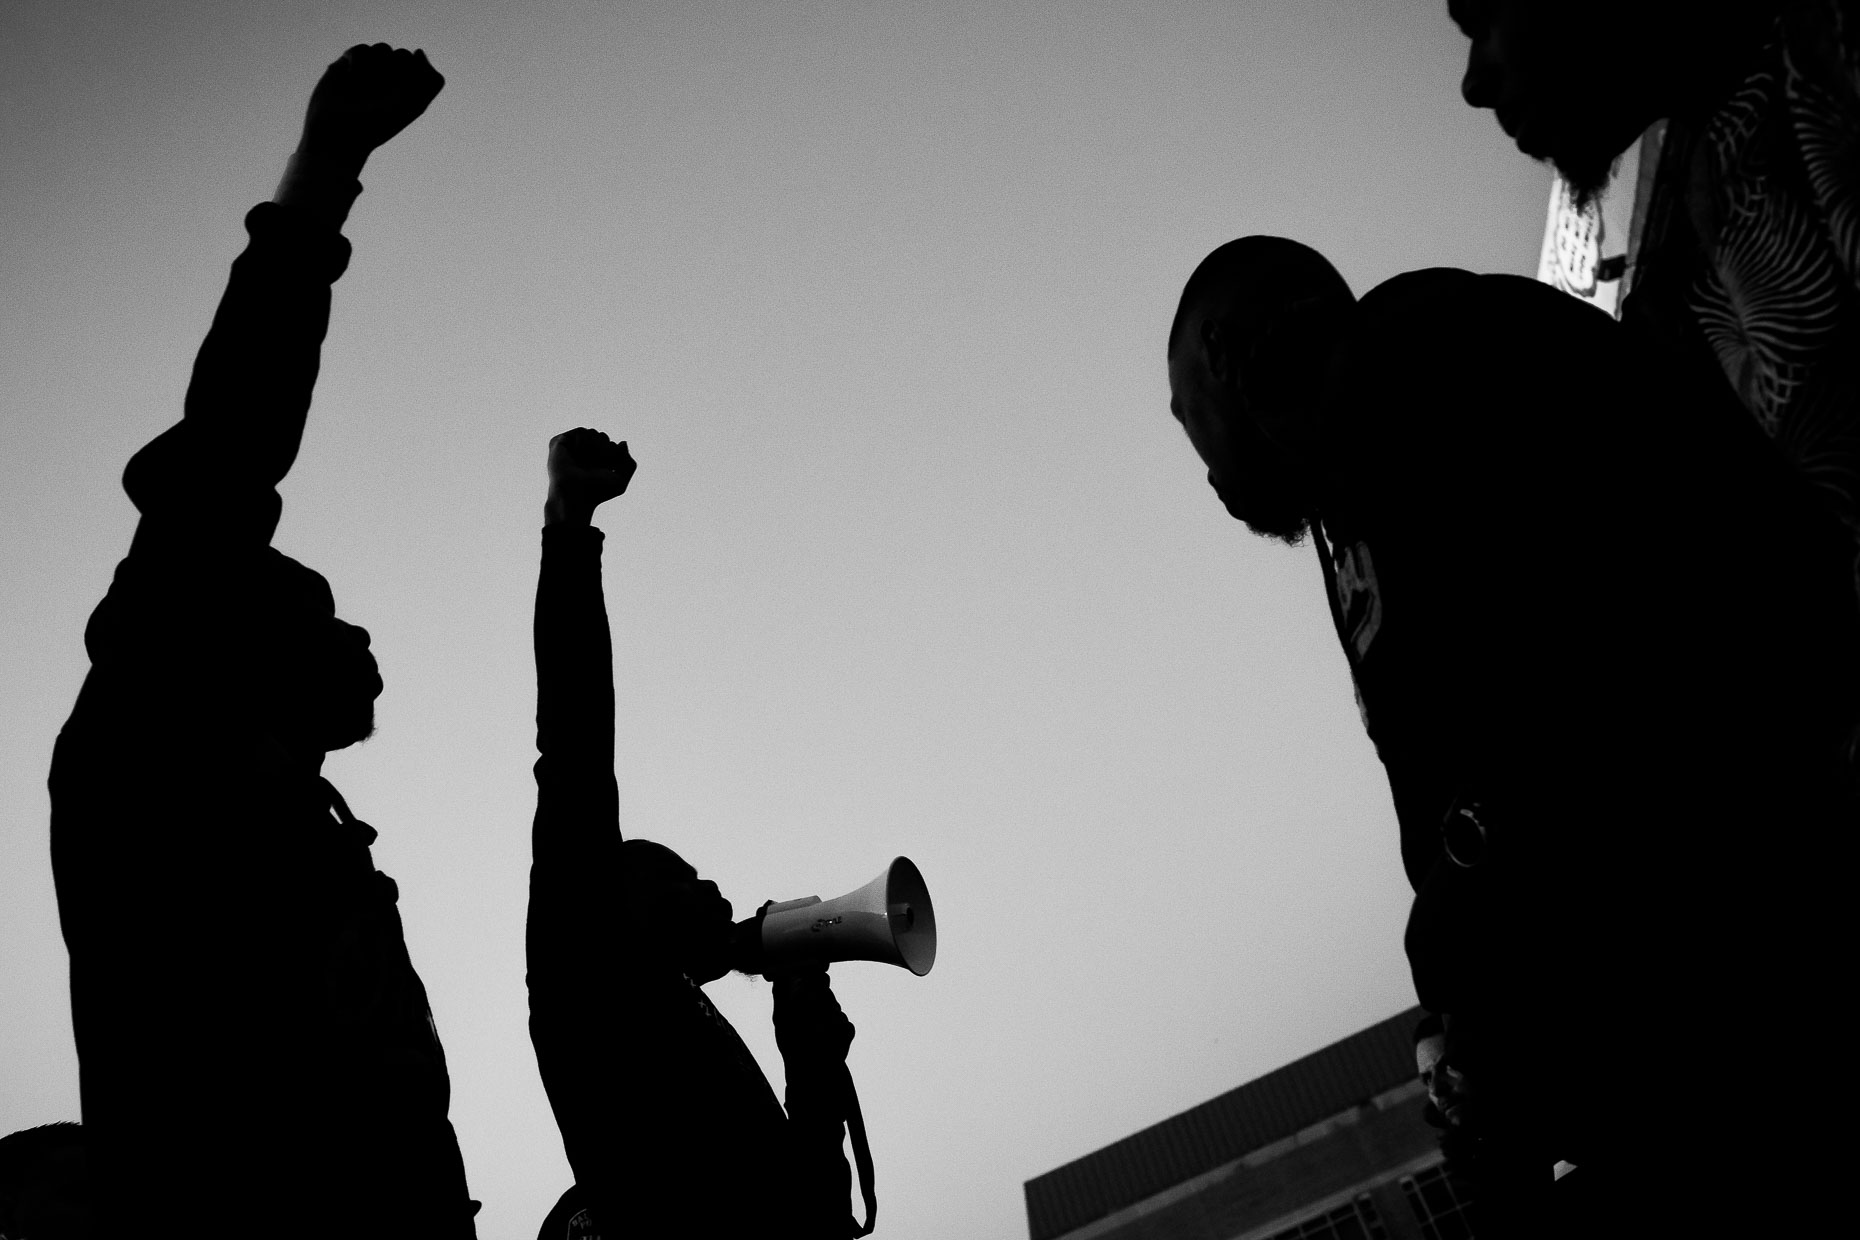 Baltimore Responds - The Baltimore Uprising - Photojournalism 02